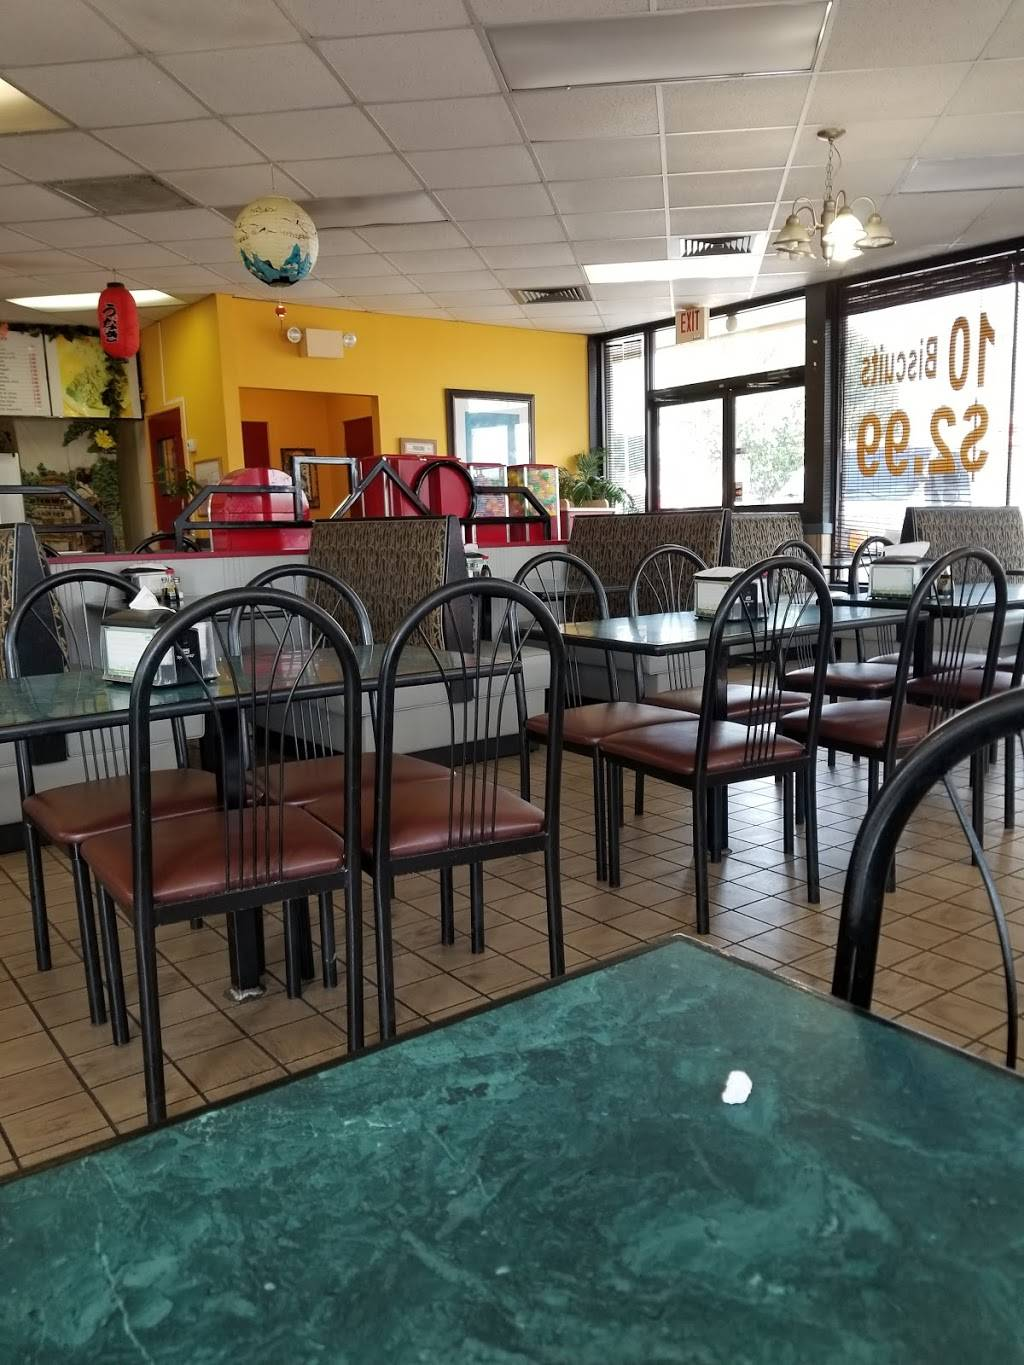 Asian Express | restaurant | 3600 W Andrew Johnson Hwy, Morristown, TN 37814, USA | 4232541888 OR +1 423-254-1888